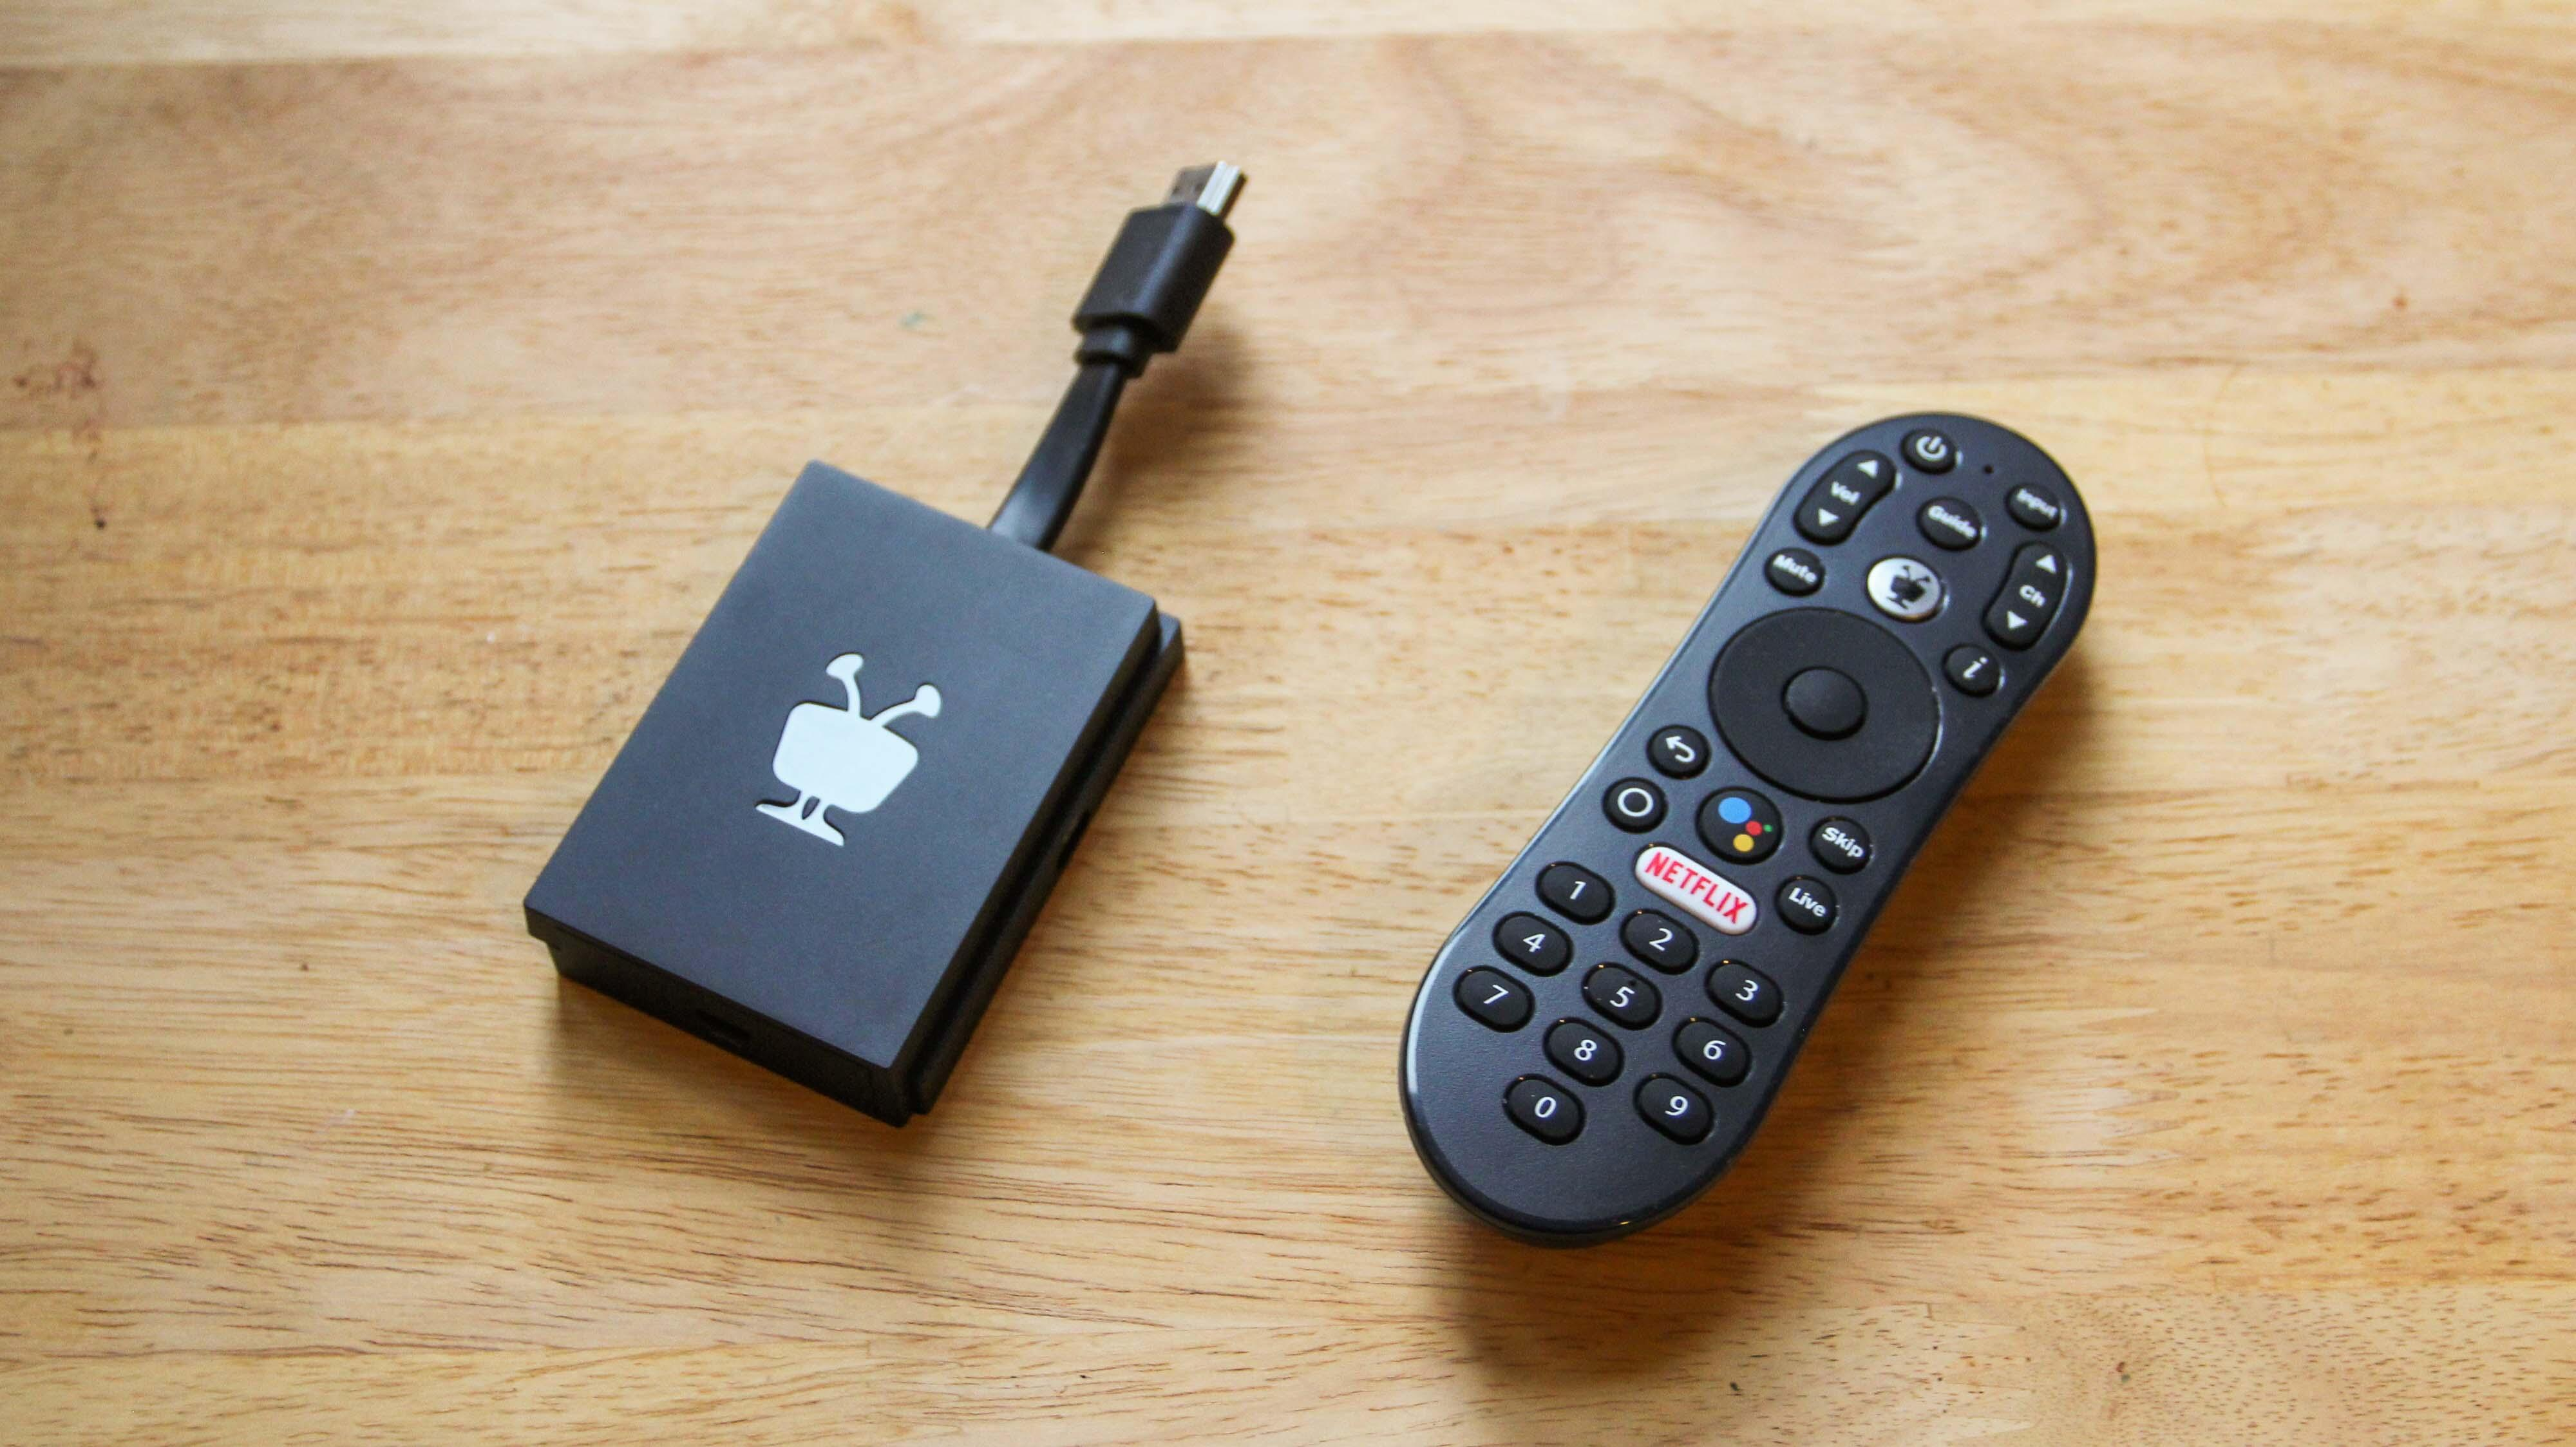 TiVo Stream 4K review: Affordable Android streamer with HBO Max, Peacock